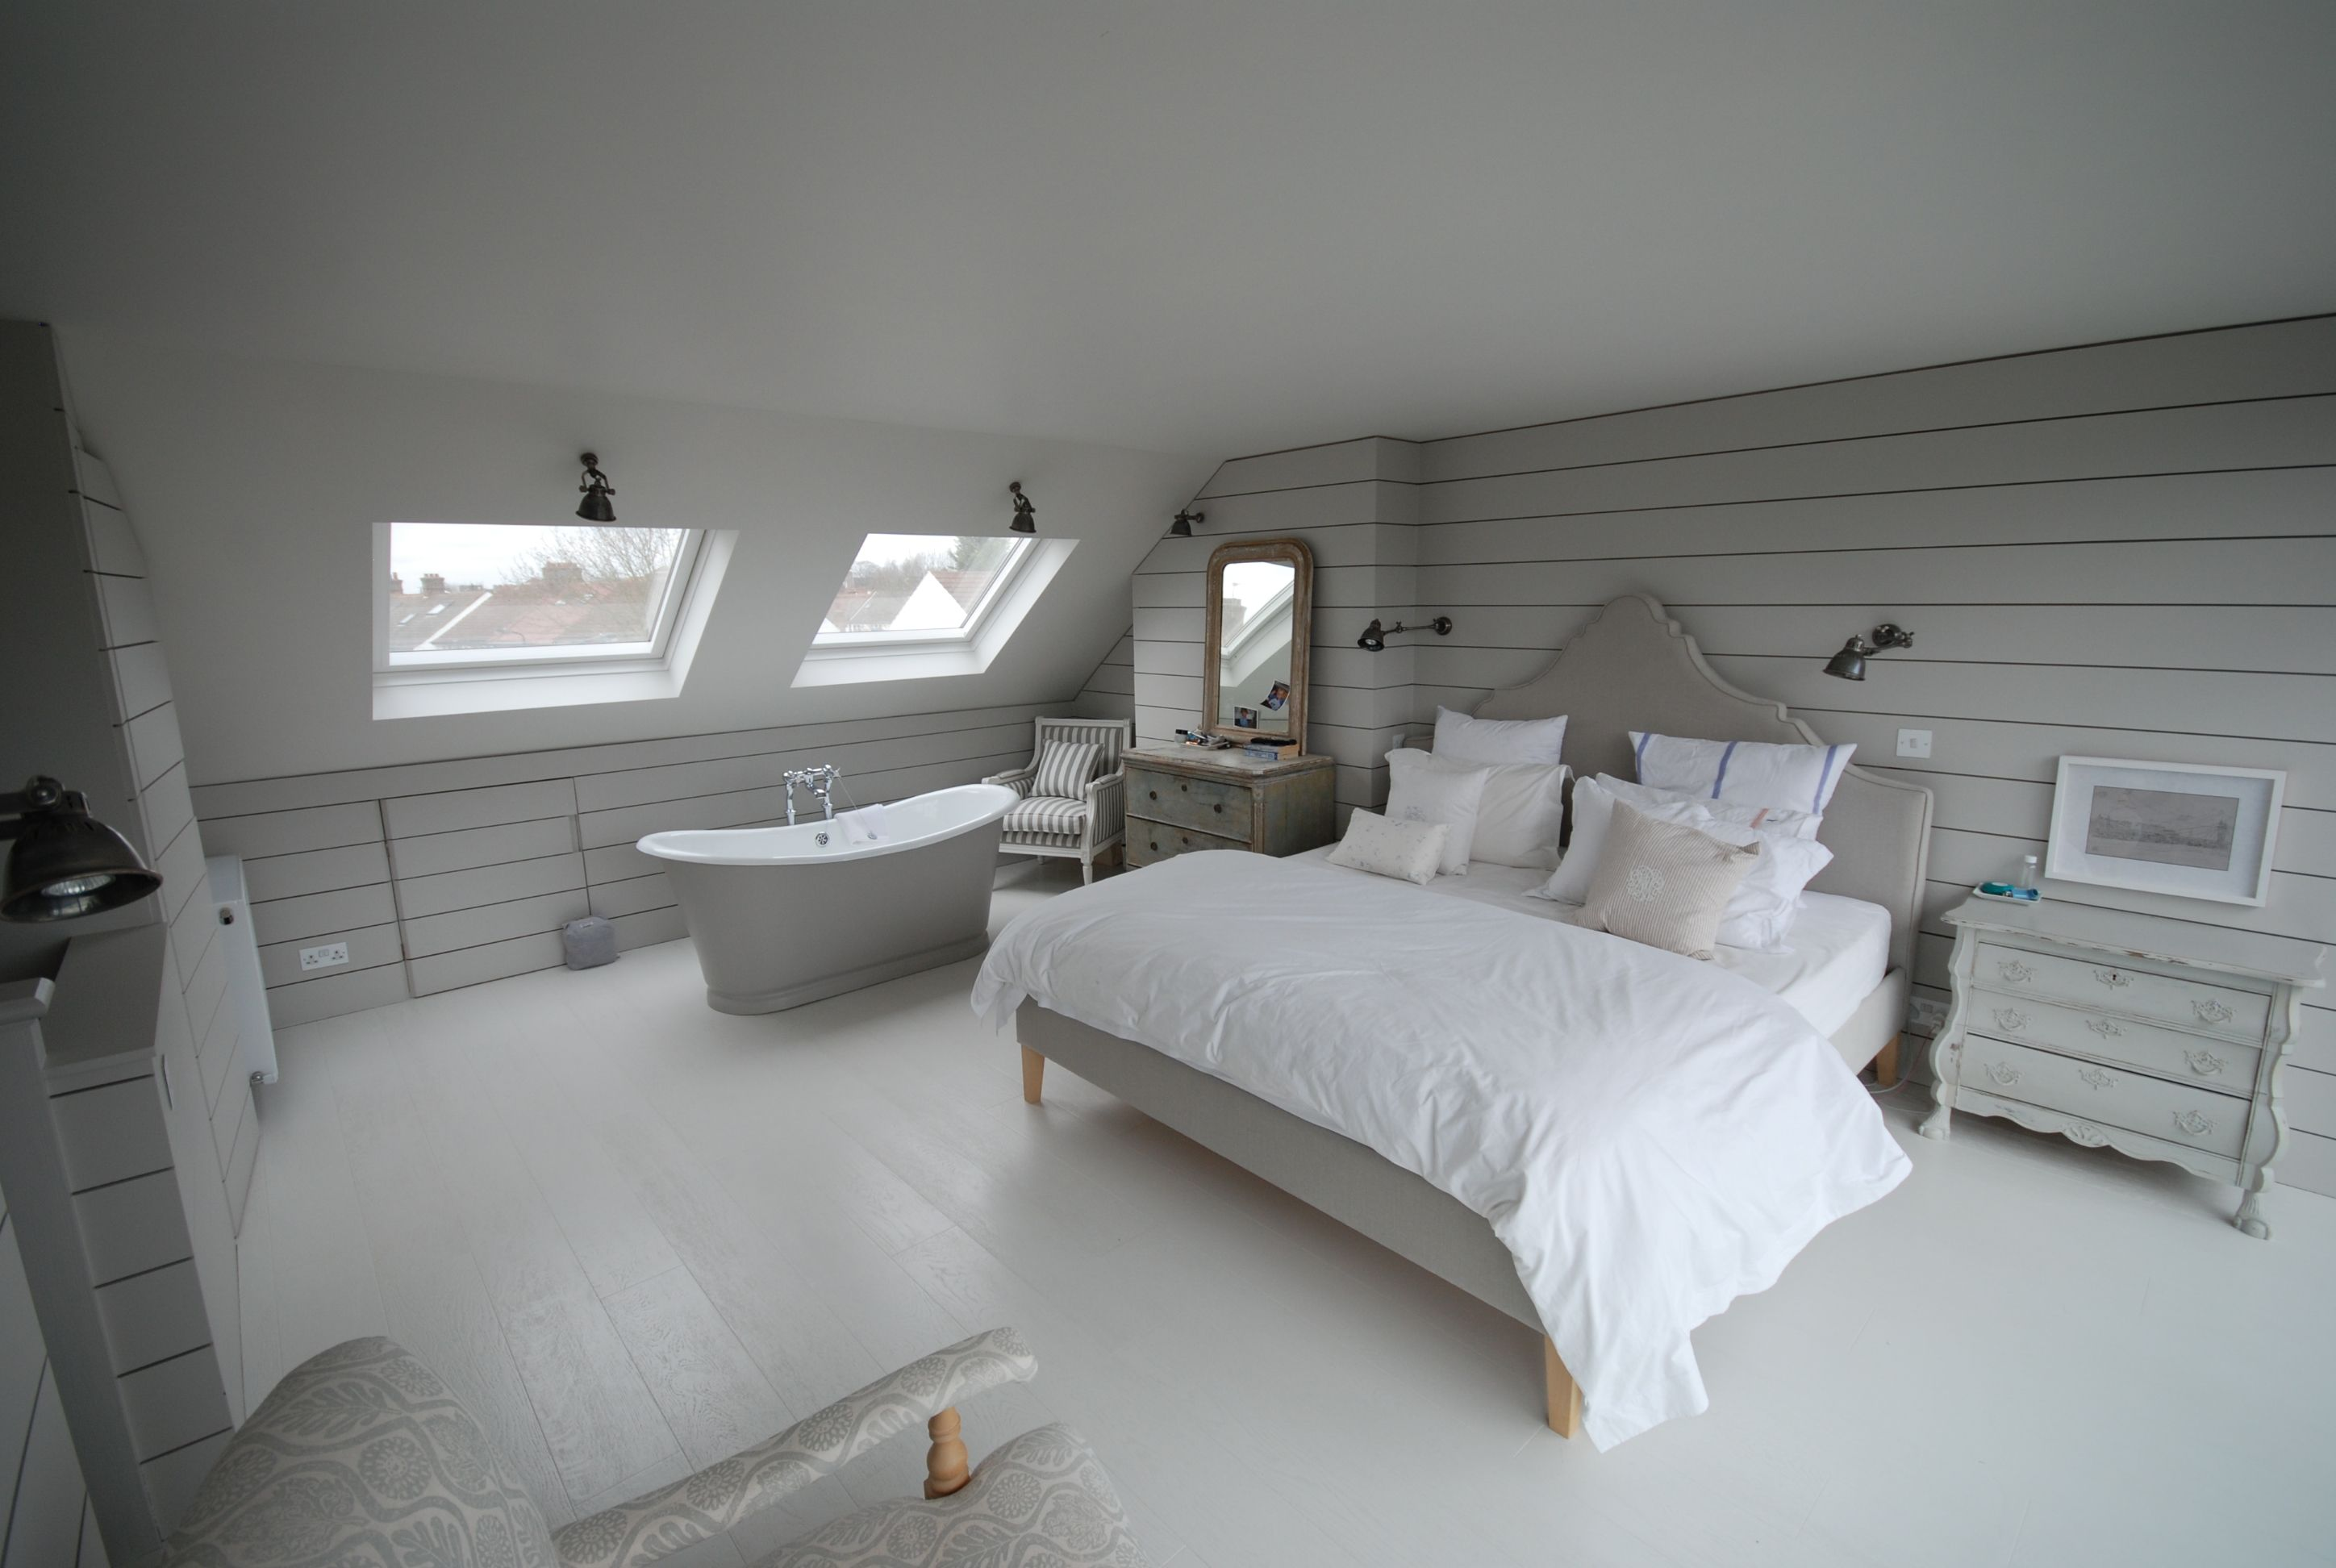 Loft conversion bedroom north london featured on sarah - How to convert a loft into a bedroom ...